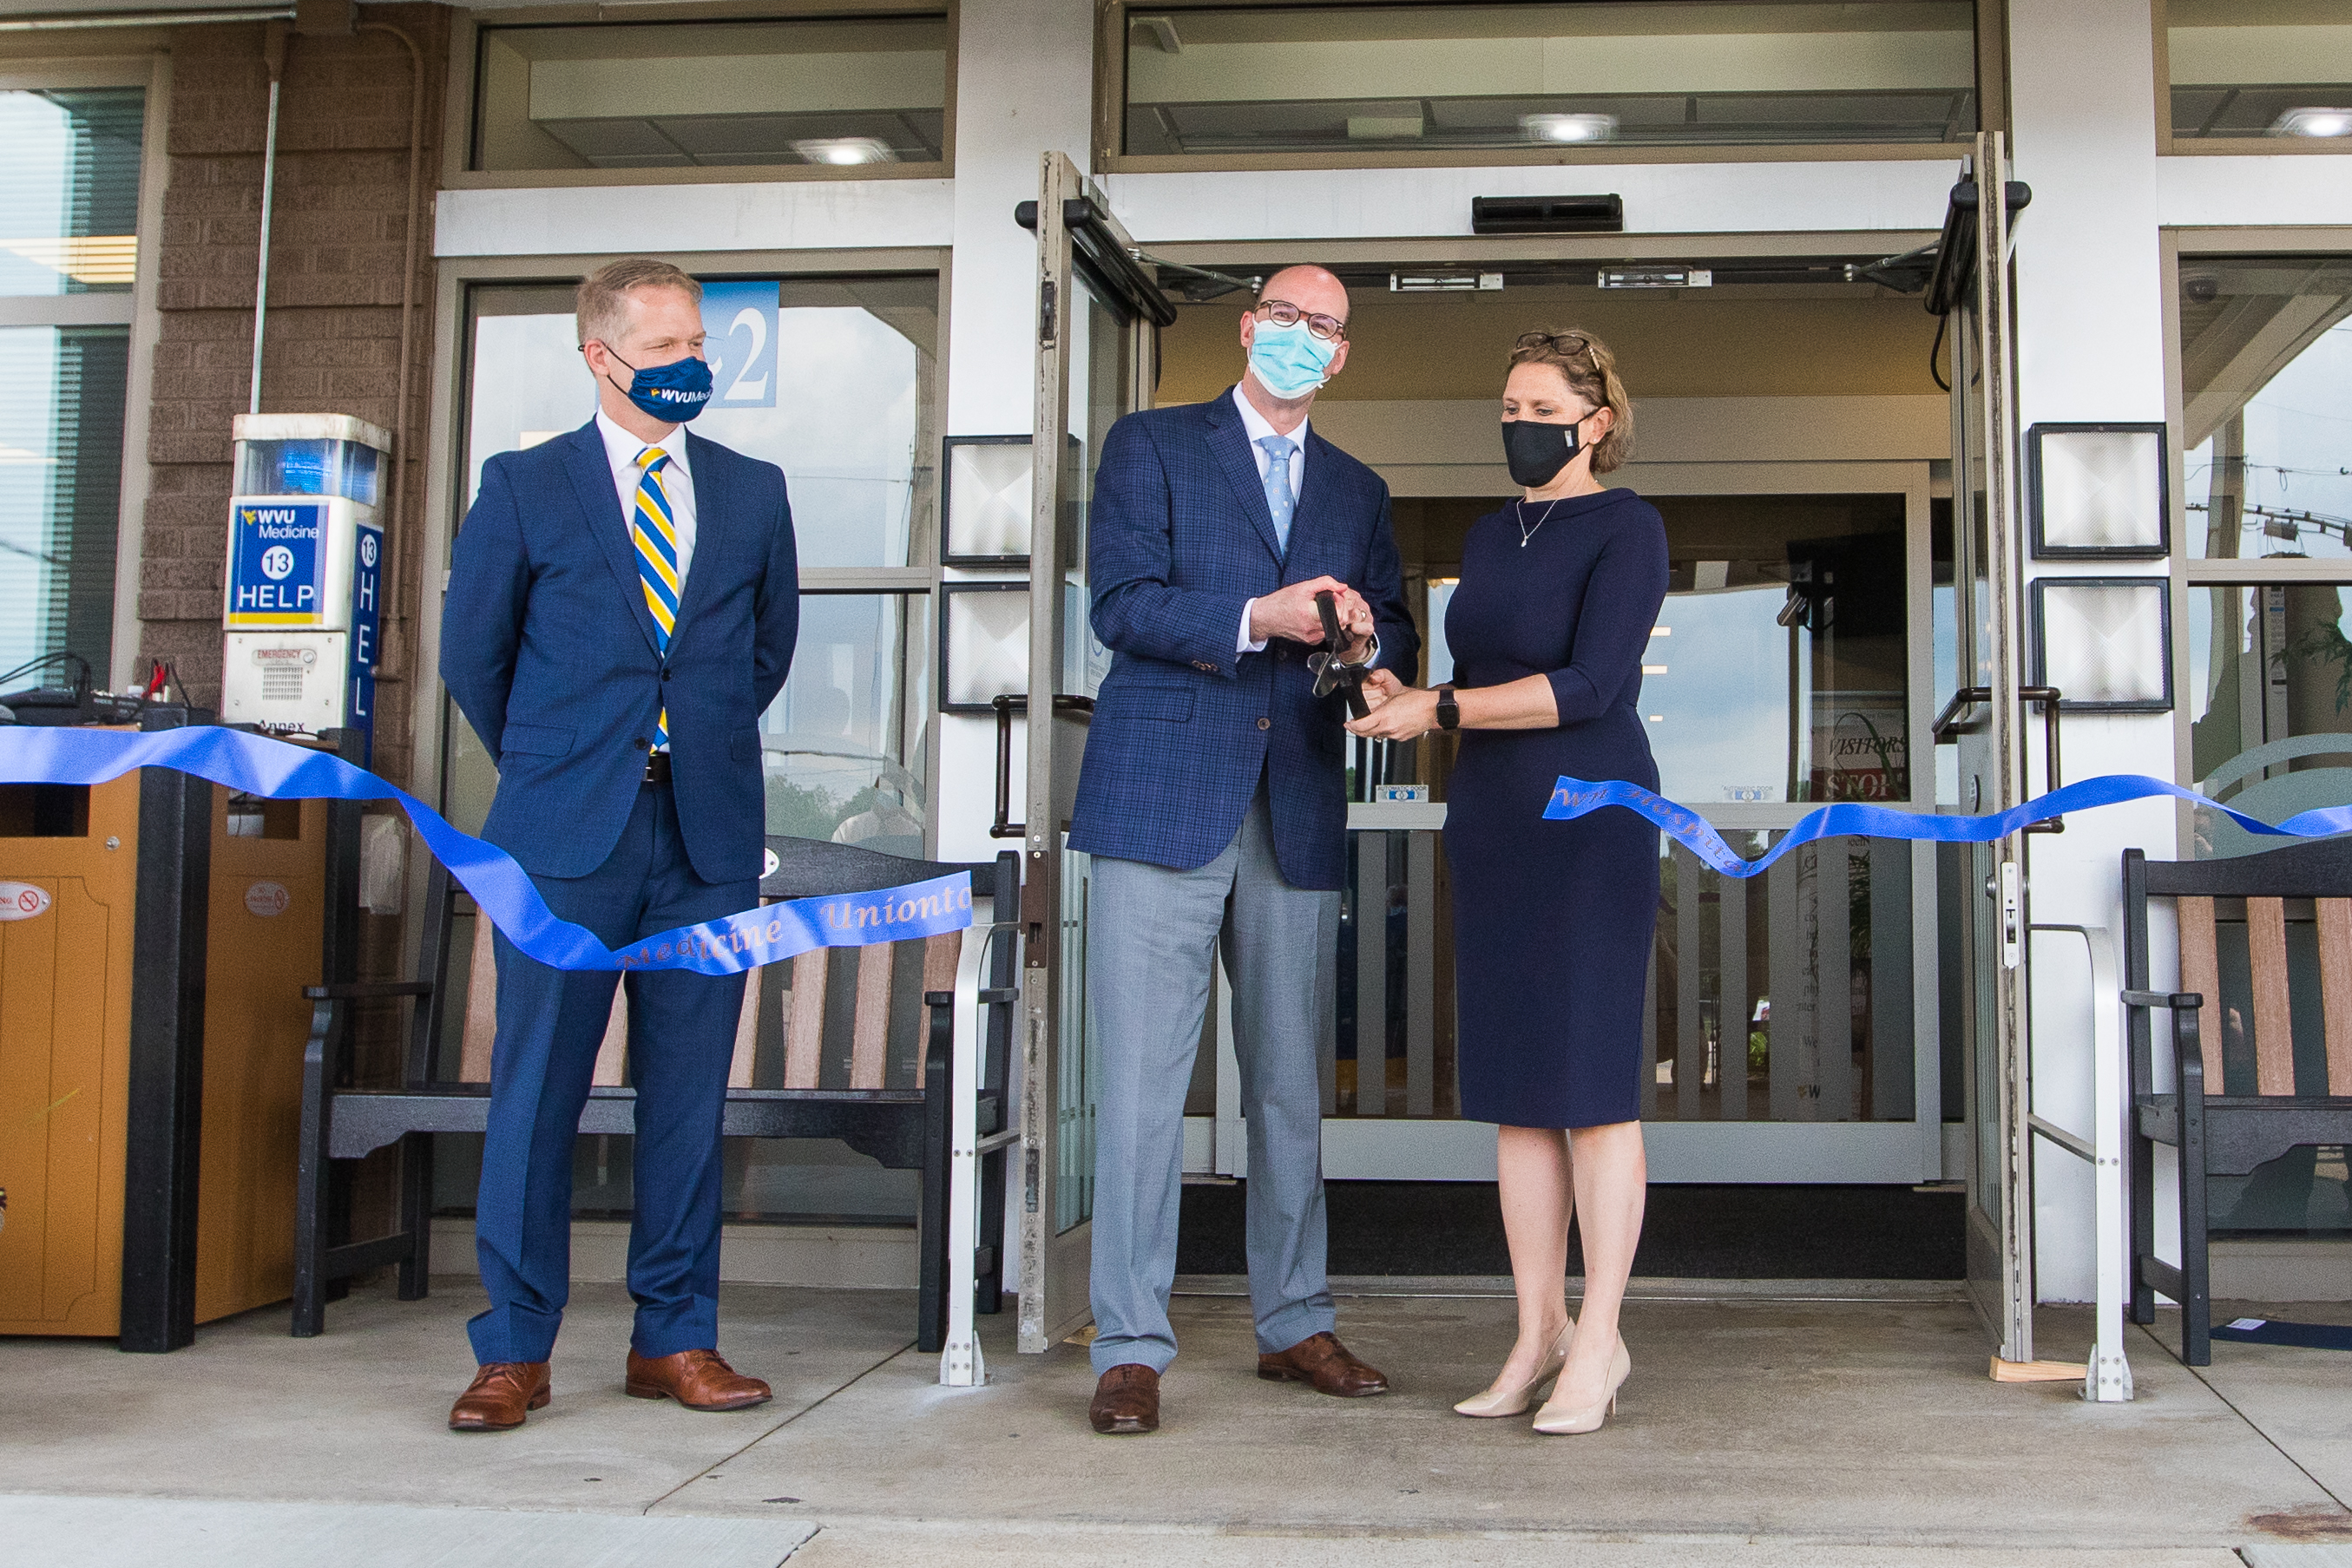 Albert Wright, Jr., WVU Medicine president and CEO, and Hannah Hazard-Jenkins, M.D., WVU Cancer Institute director, cut the ribbon marking the opening of the Cancer Center in Uniontown.